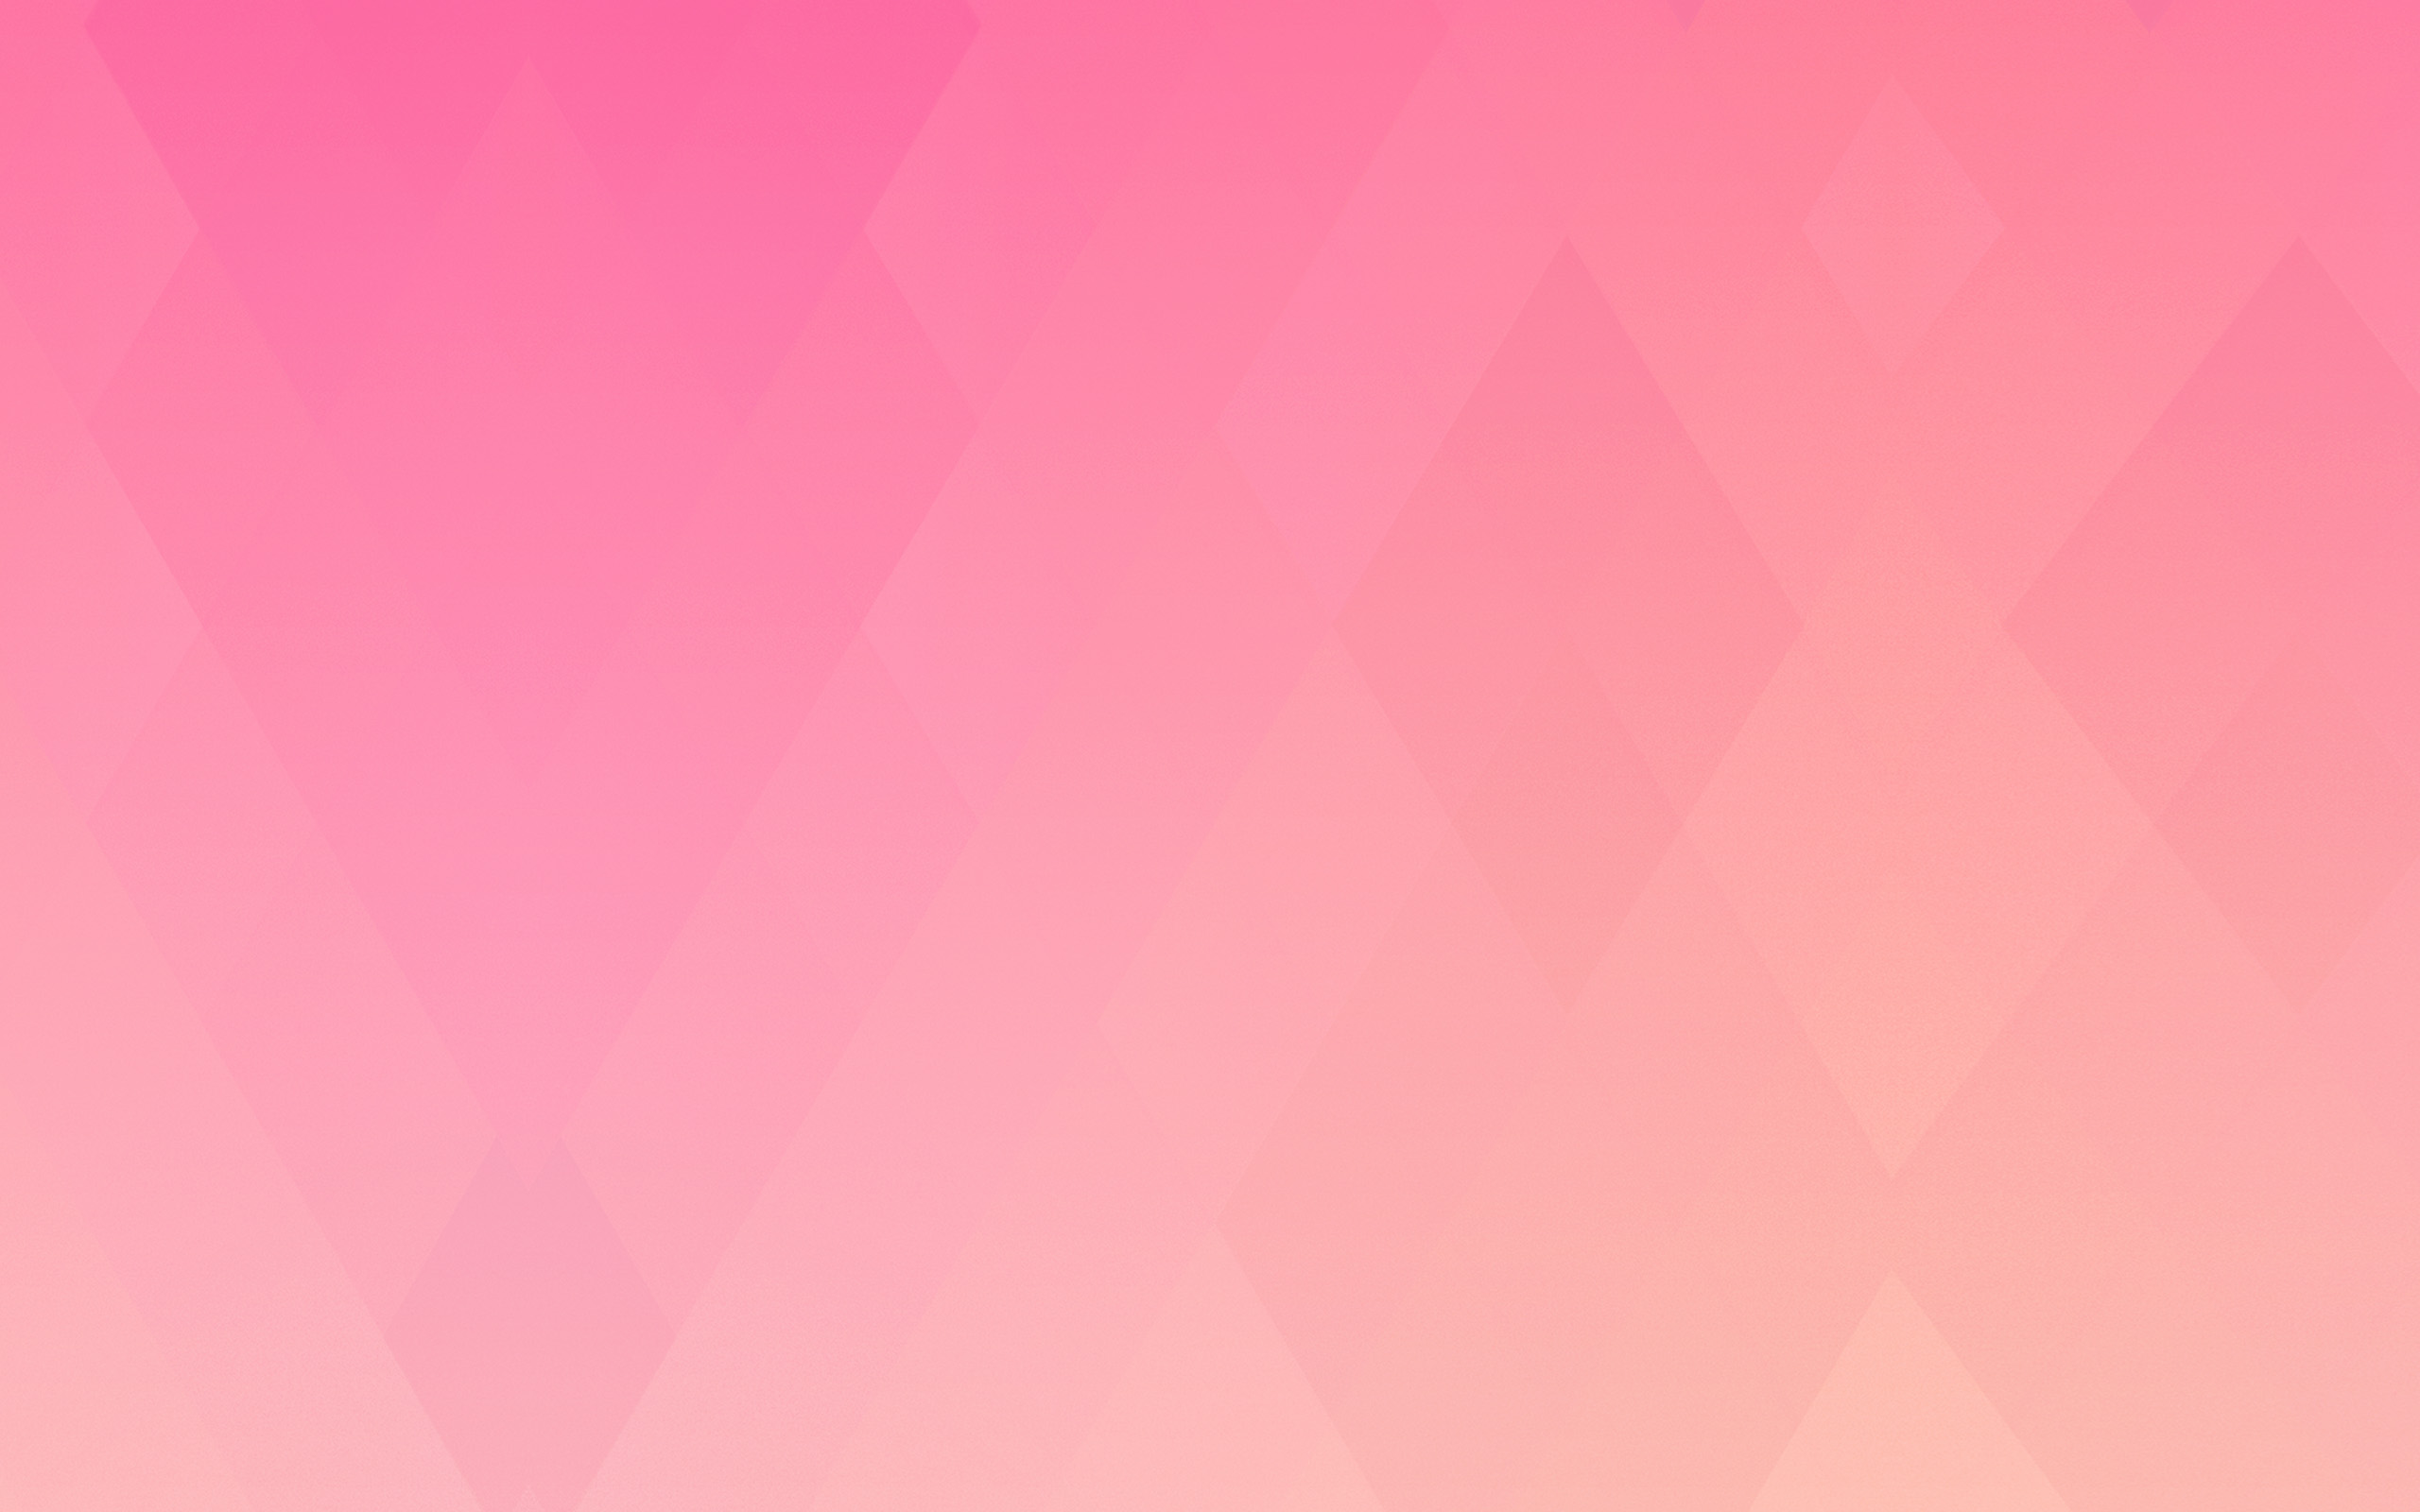 vq13-polygon-art-pink-red-abstract-pattern-wallpaper